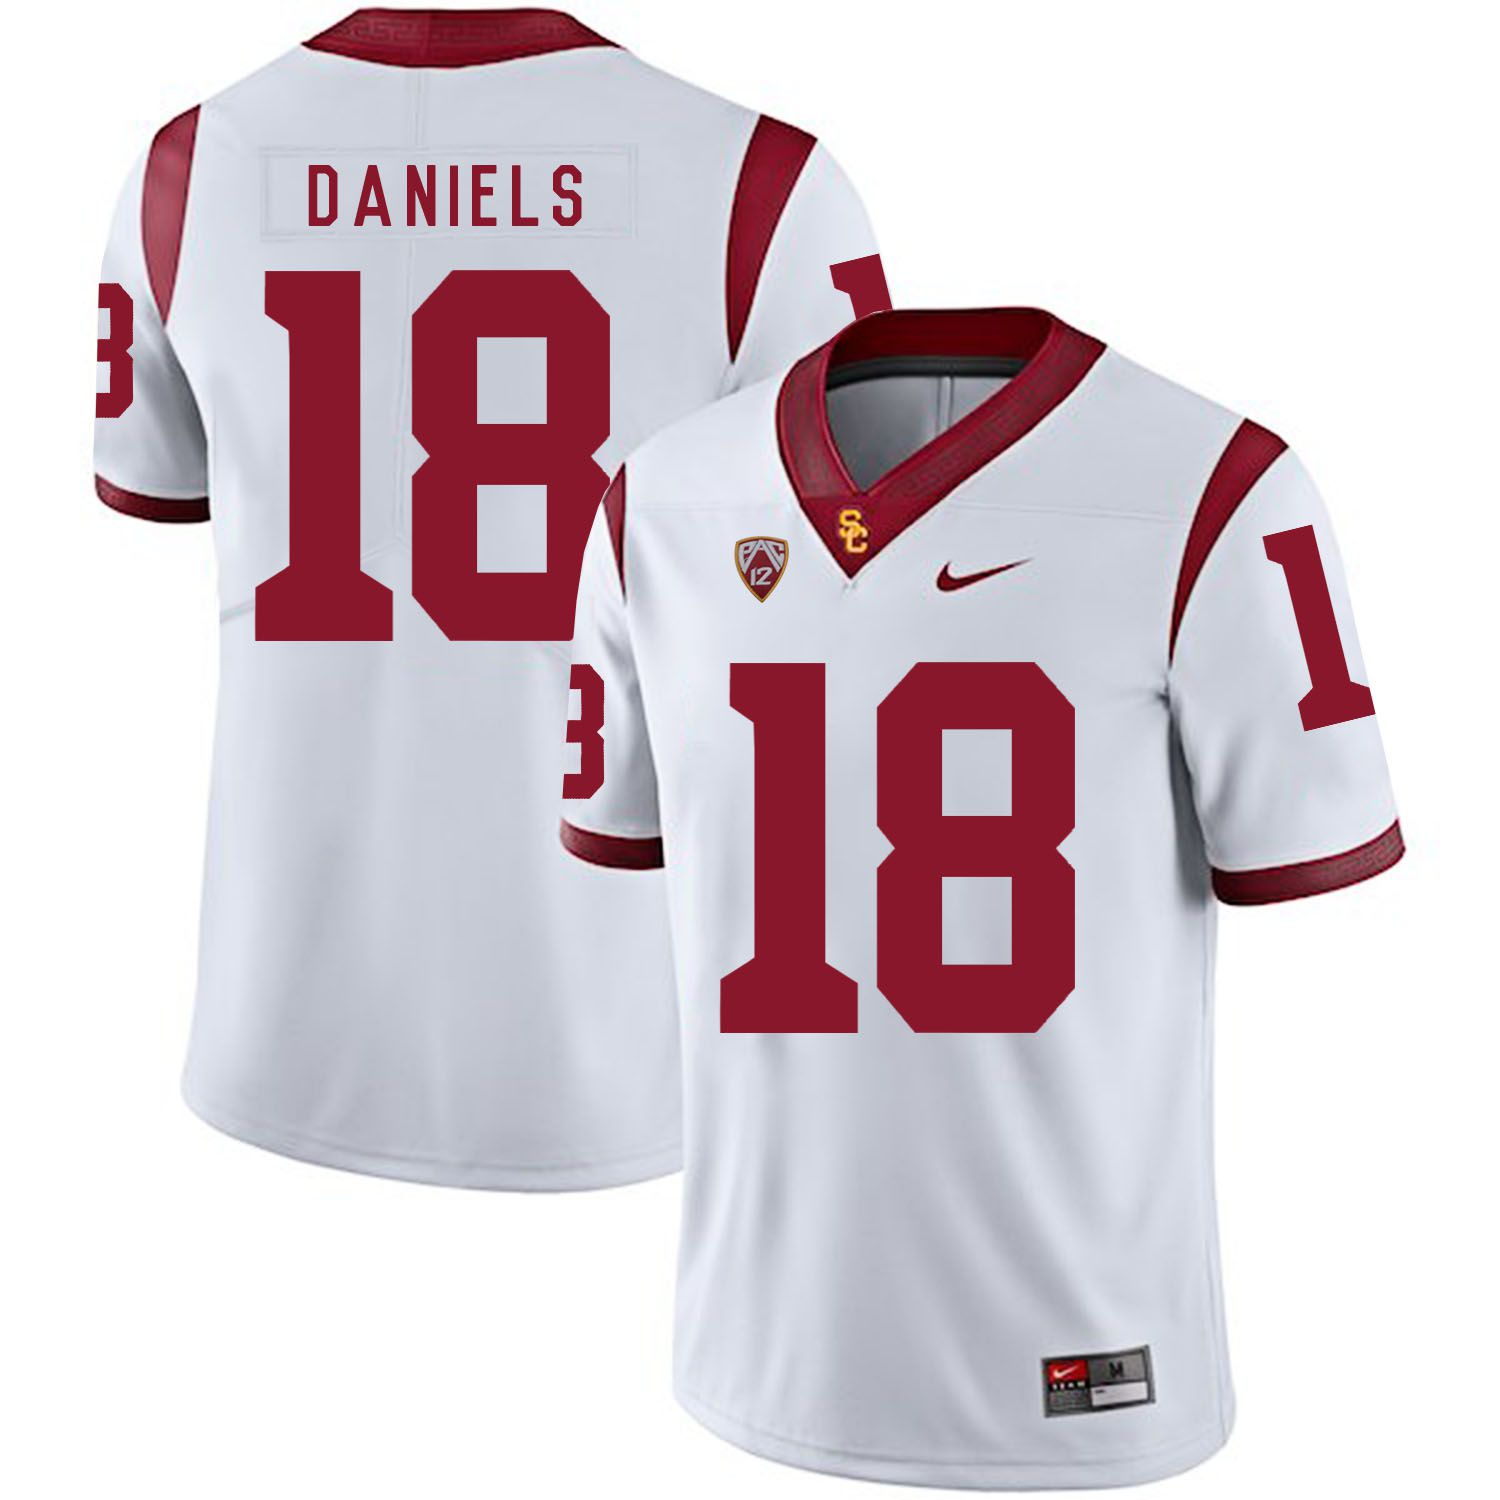 Men USC Trojans 18 Daniels White Customized NCAA Jerseys